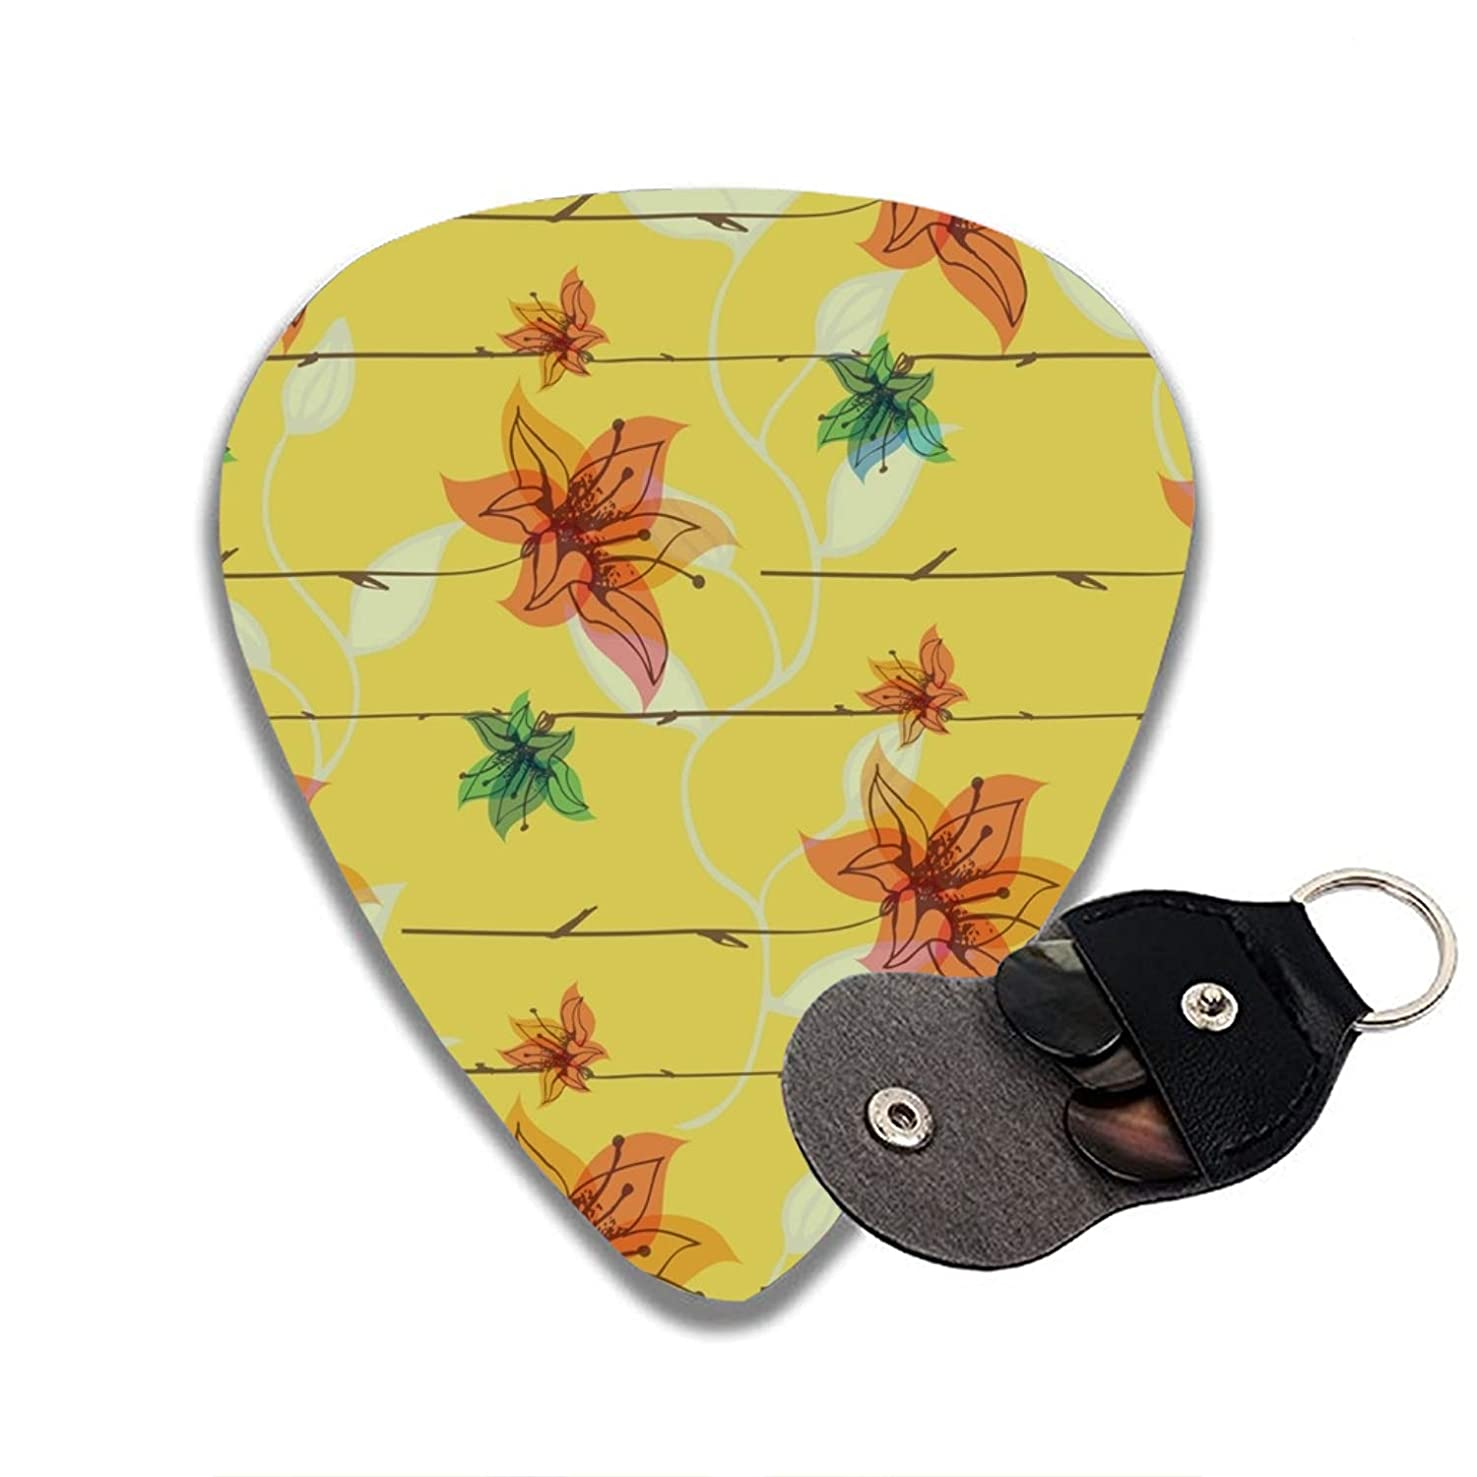 Guitar Picks Petals On A Yellow Background Celluloid Thin Medium Heavy Bass 3D Printed Variety Pick Small Music Gifts Grip -6pcs